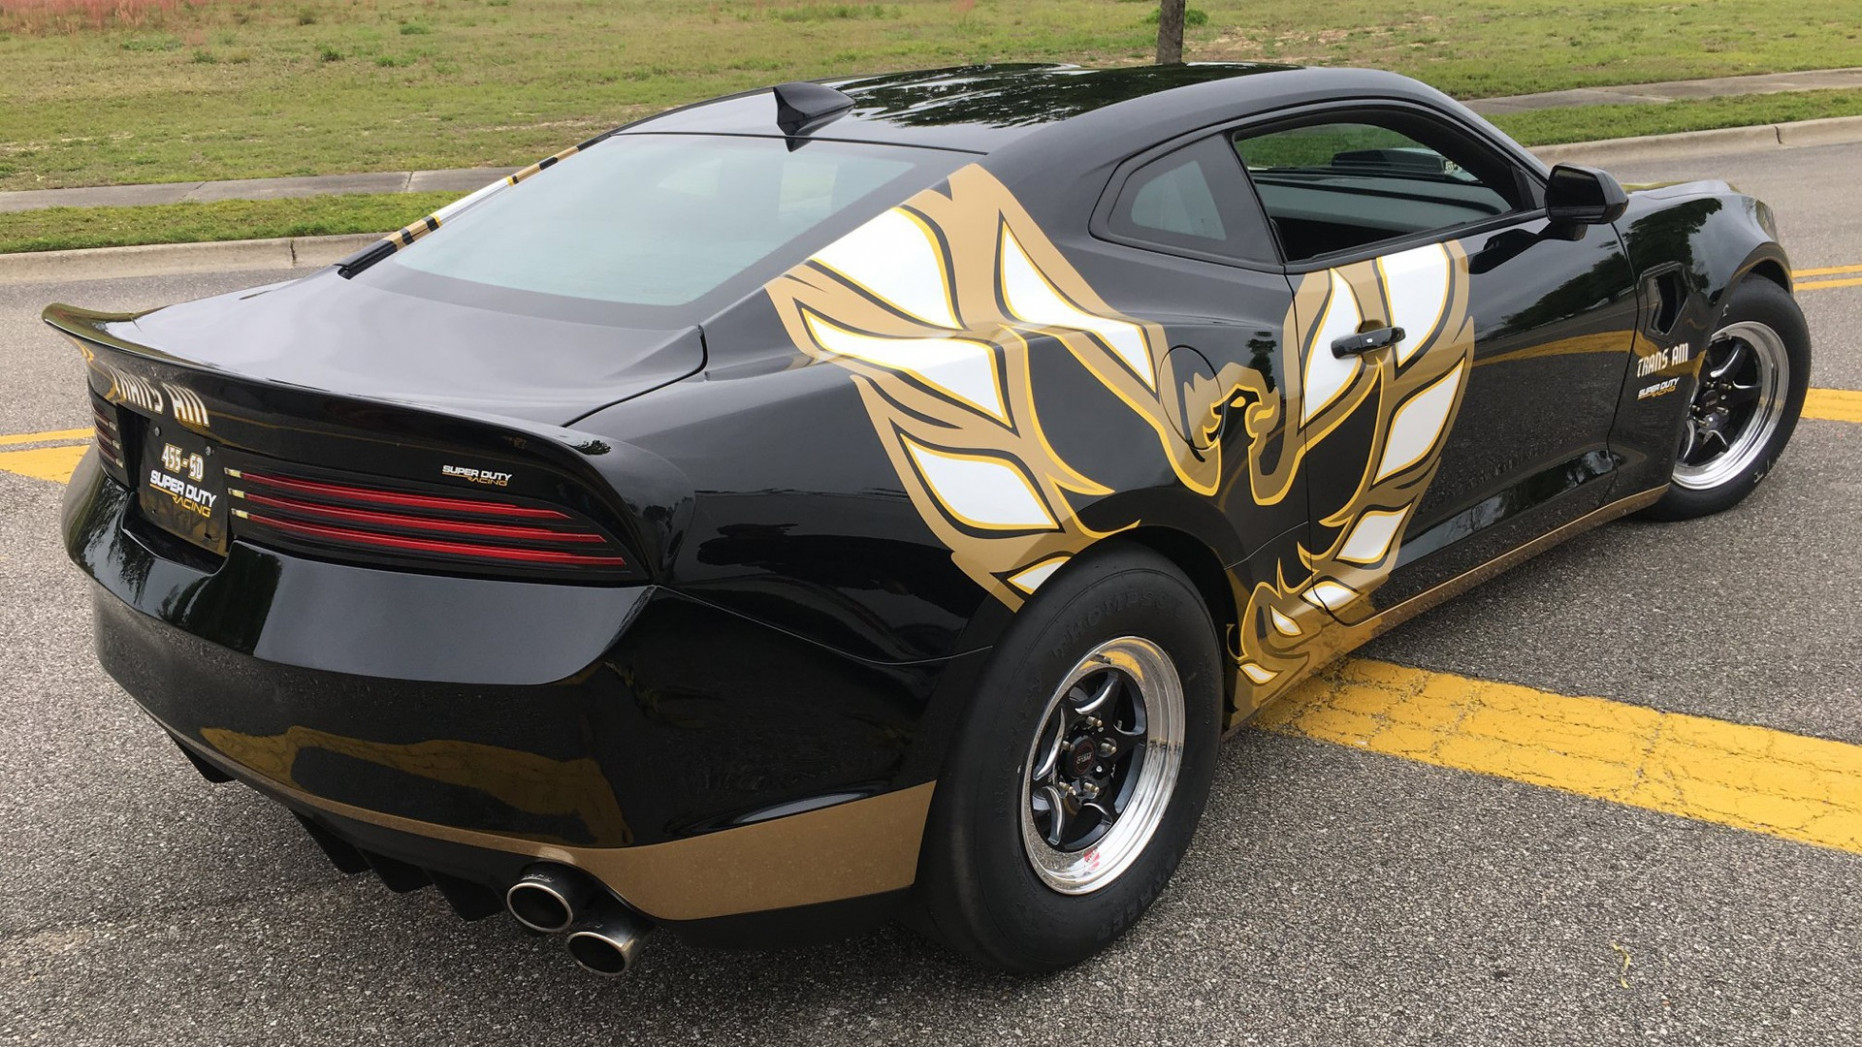 Trans Am Depot makes 6 Super Duty drag car with 6,600 horsepower | 2020 Dodge Trans Am